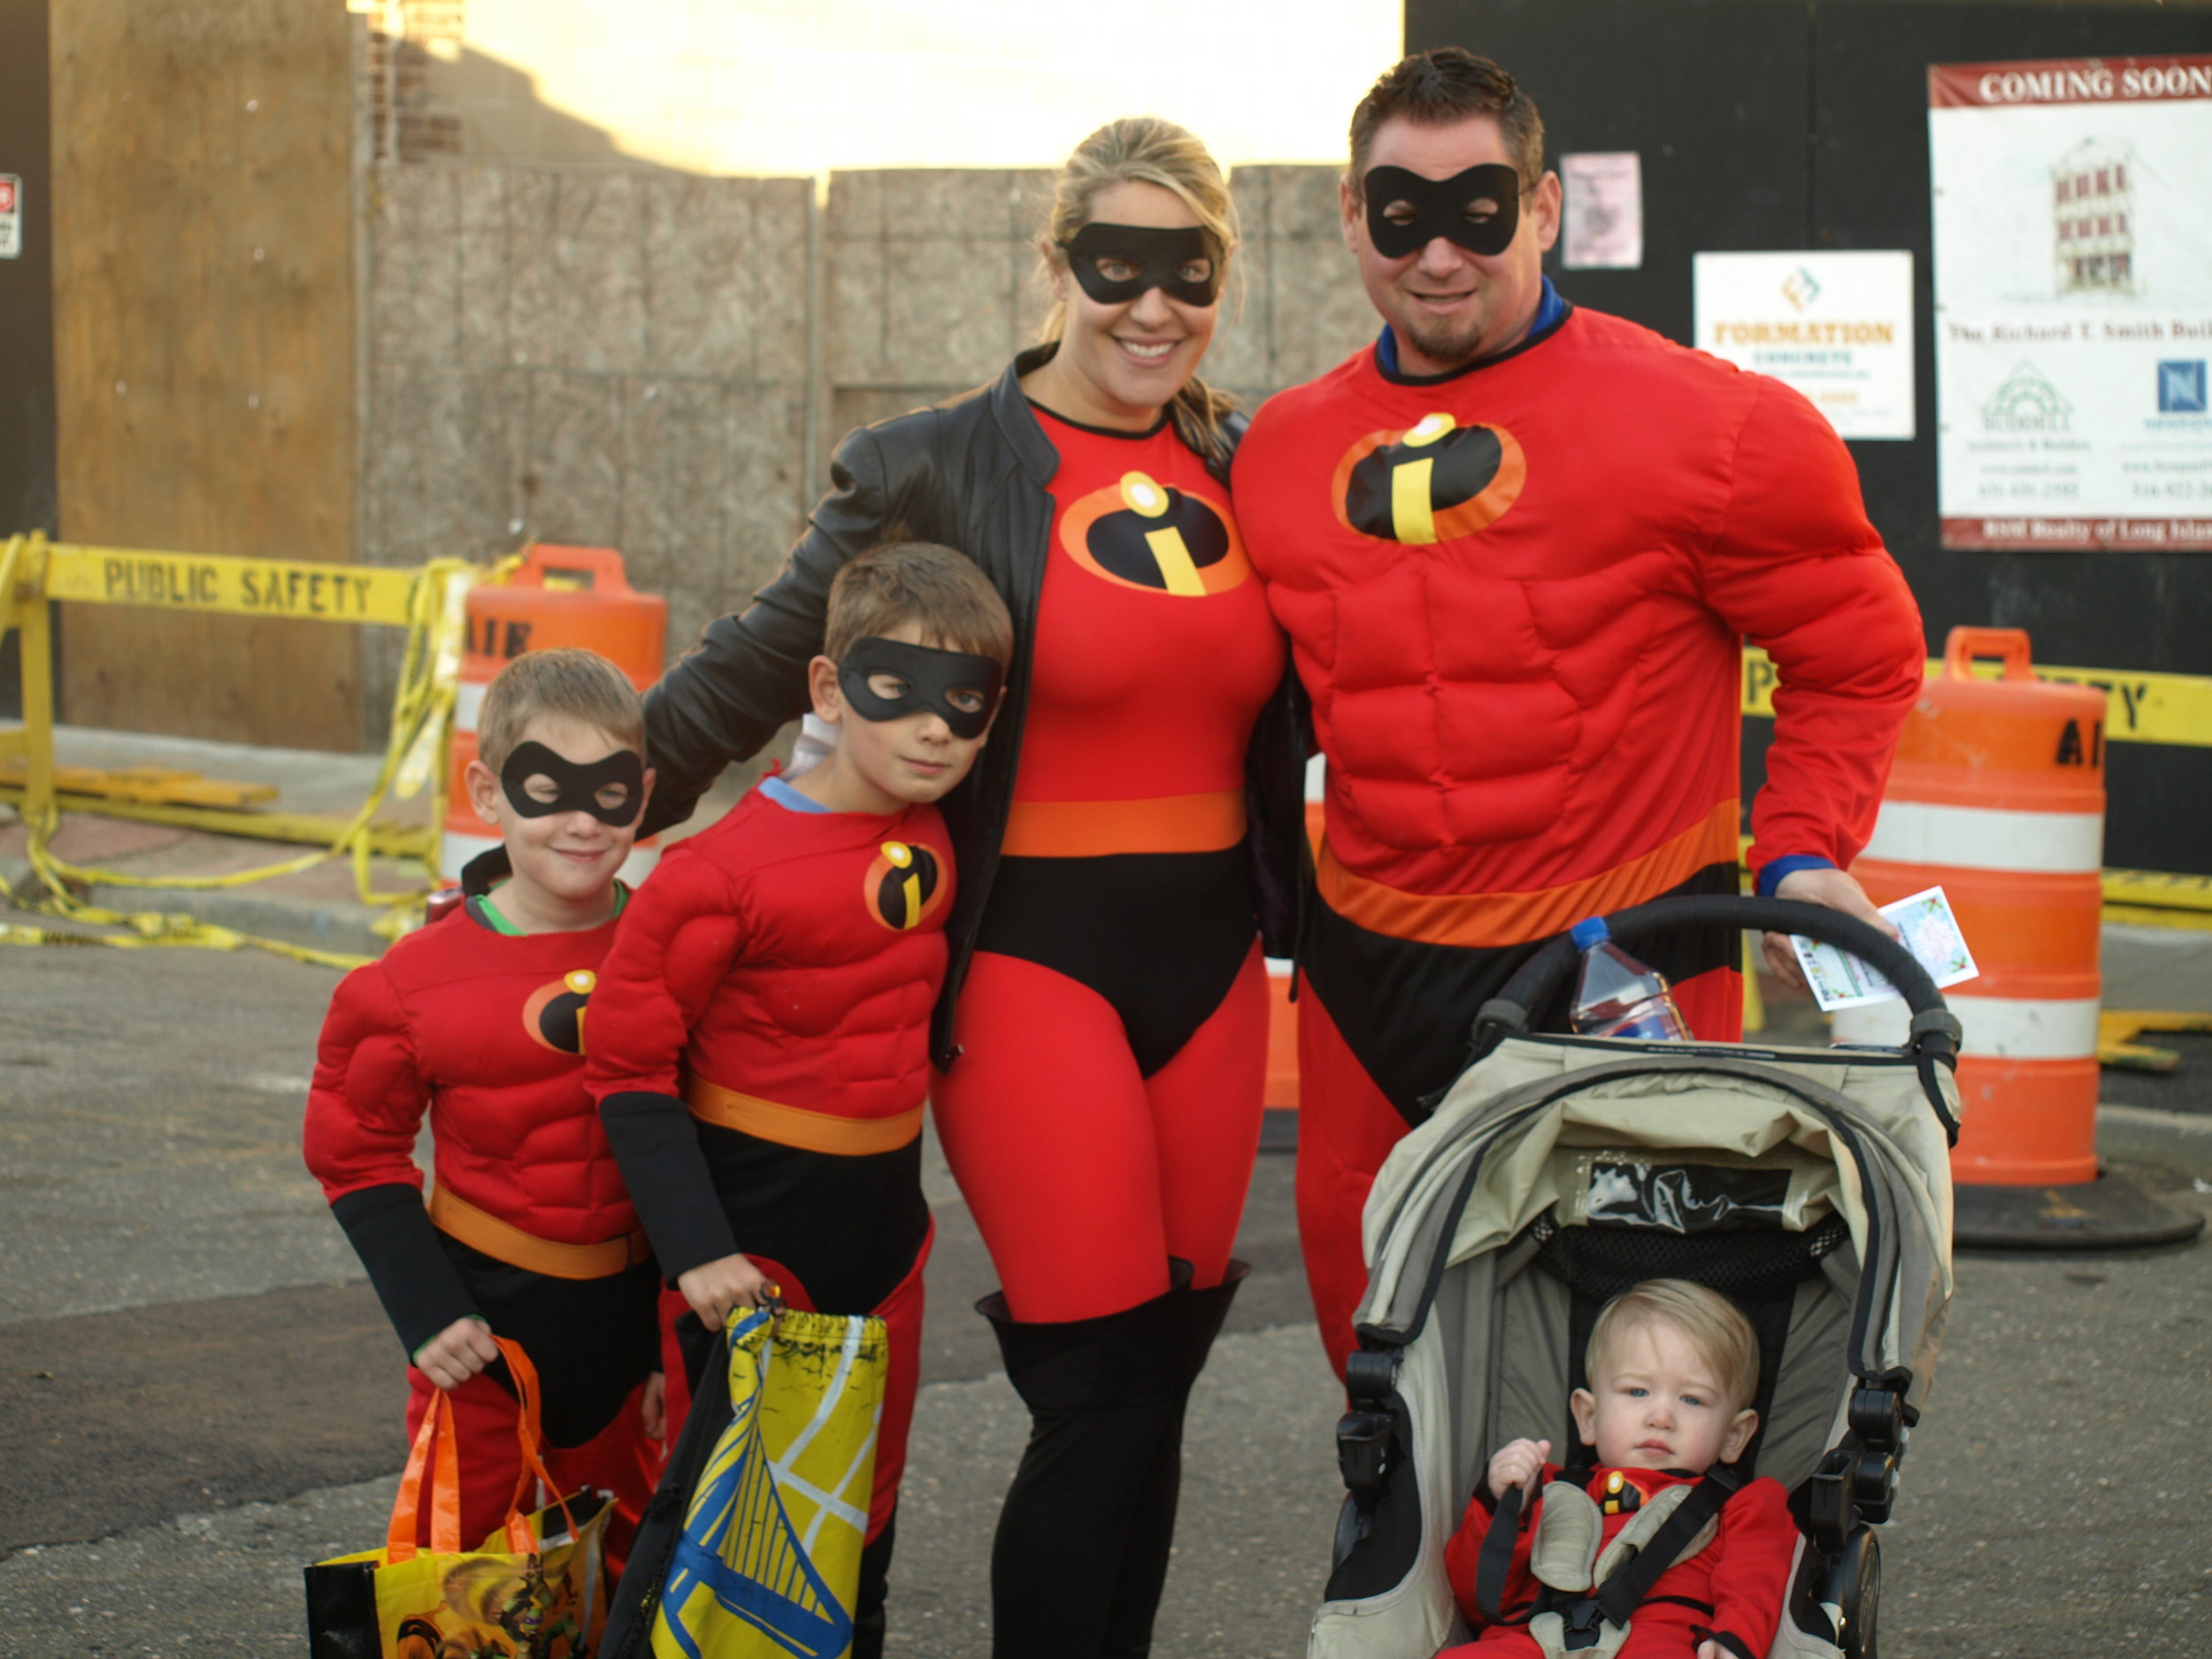 The Incredible family enjoyed dressing up together for at the Annual Children's Halloween Costume Parade .  Long Islander News Photo/Connor Beach